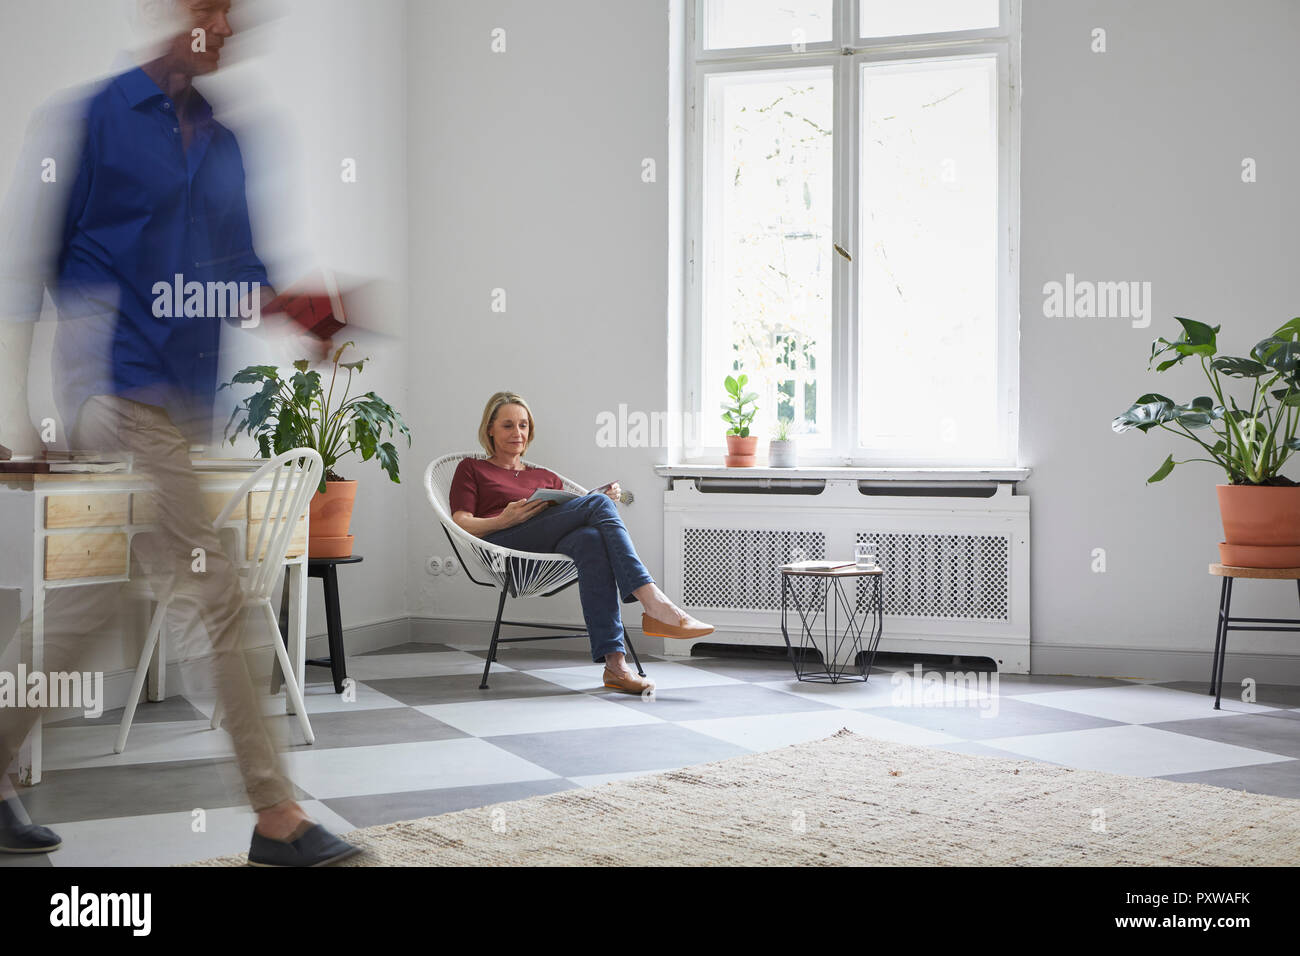 Mature woman reading magazine at home with man passing by - Stock Image